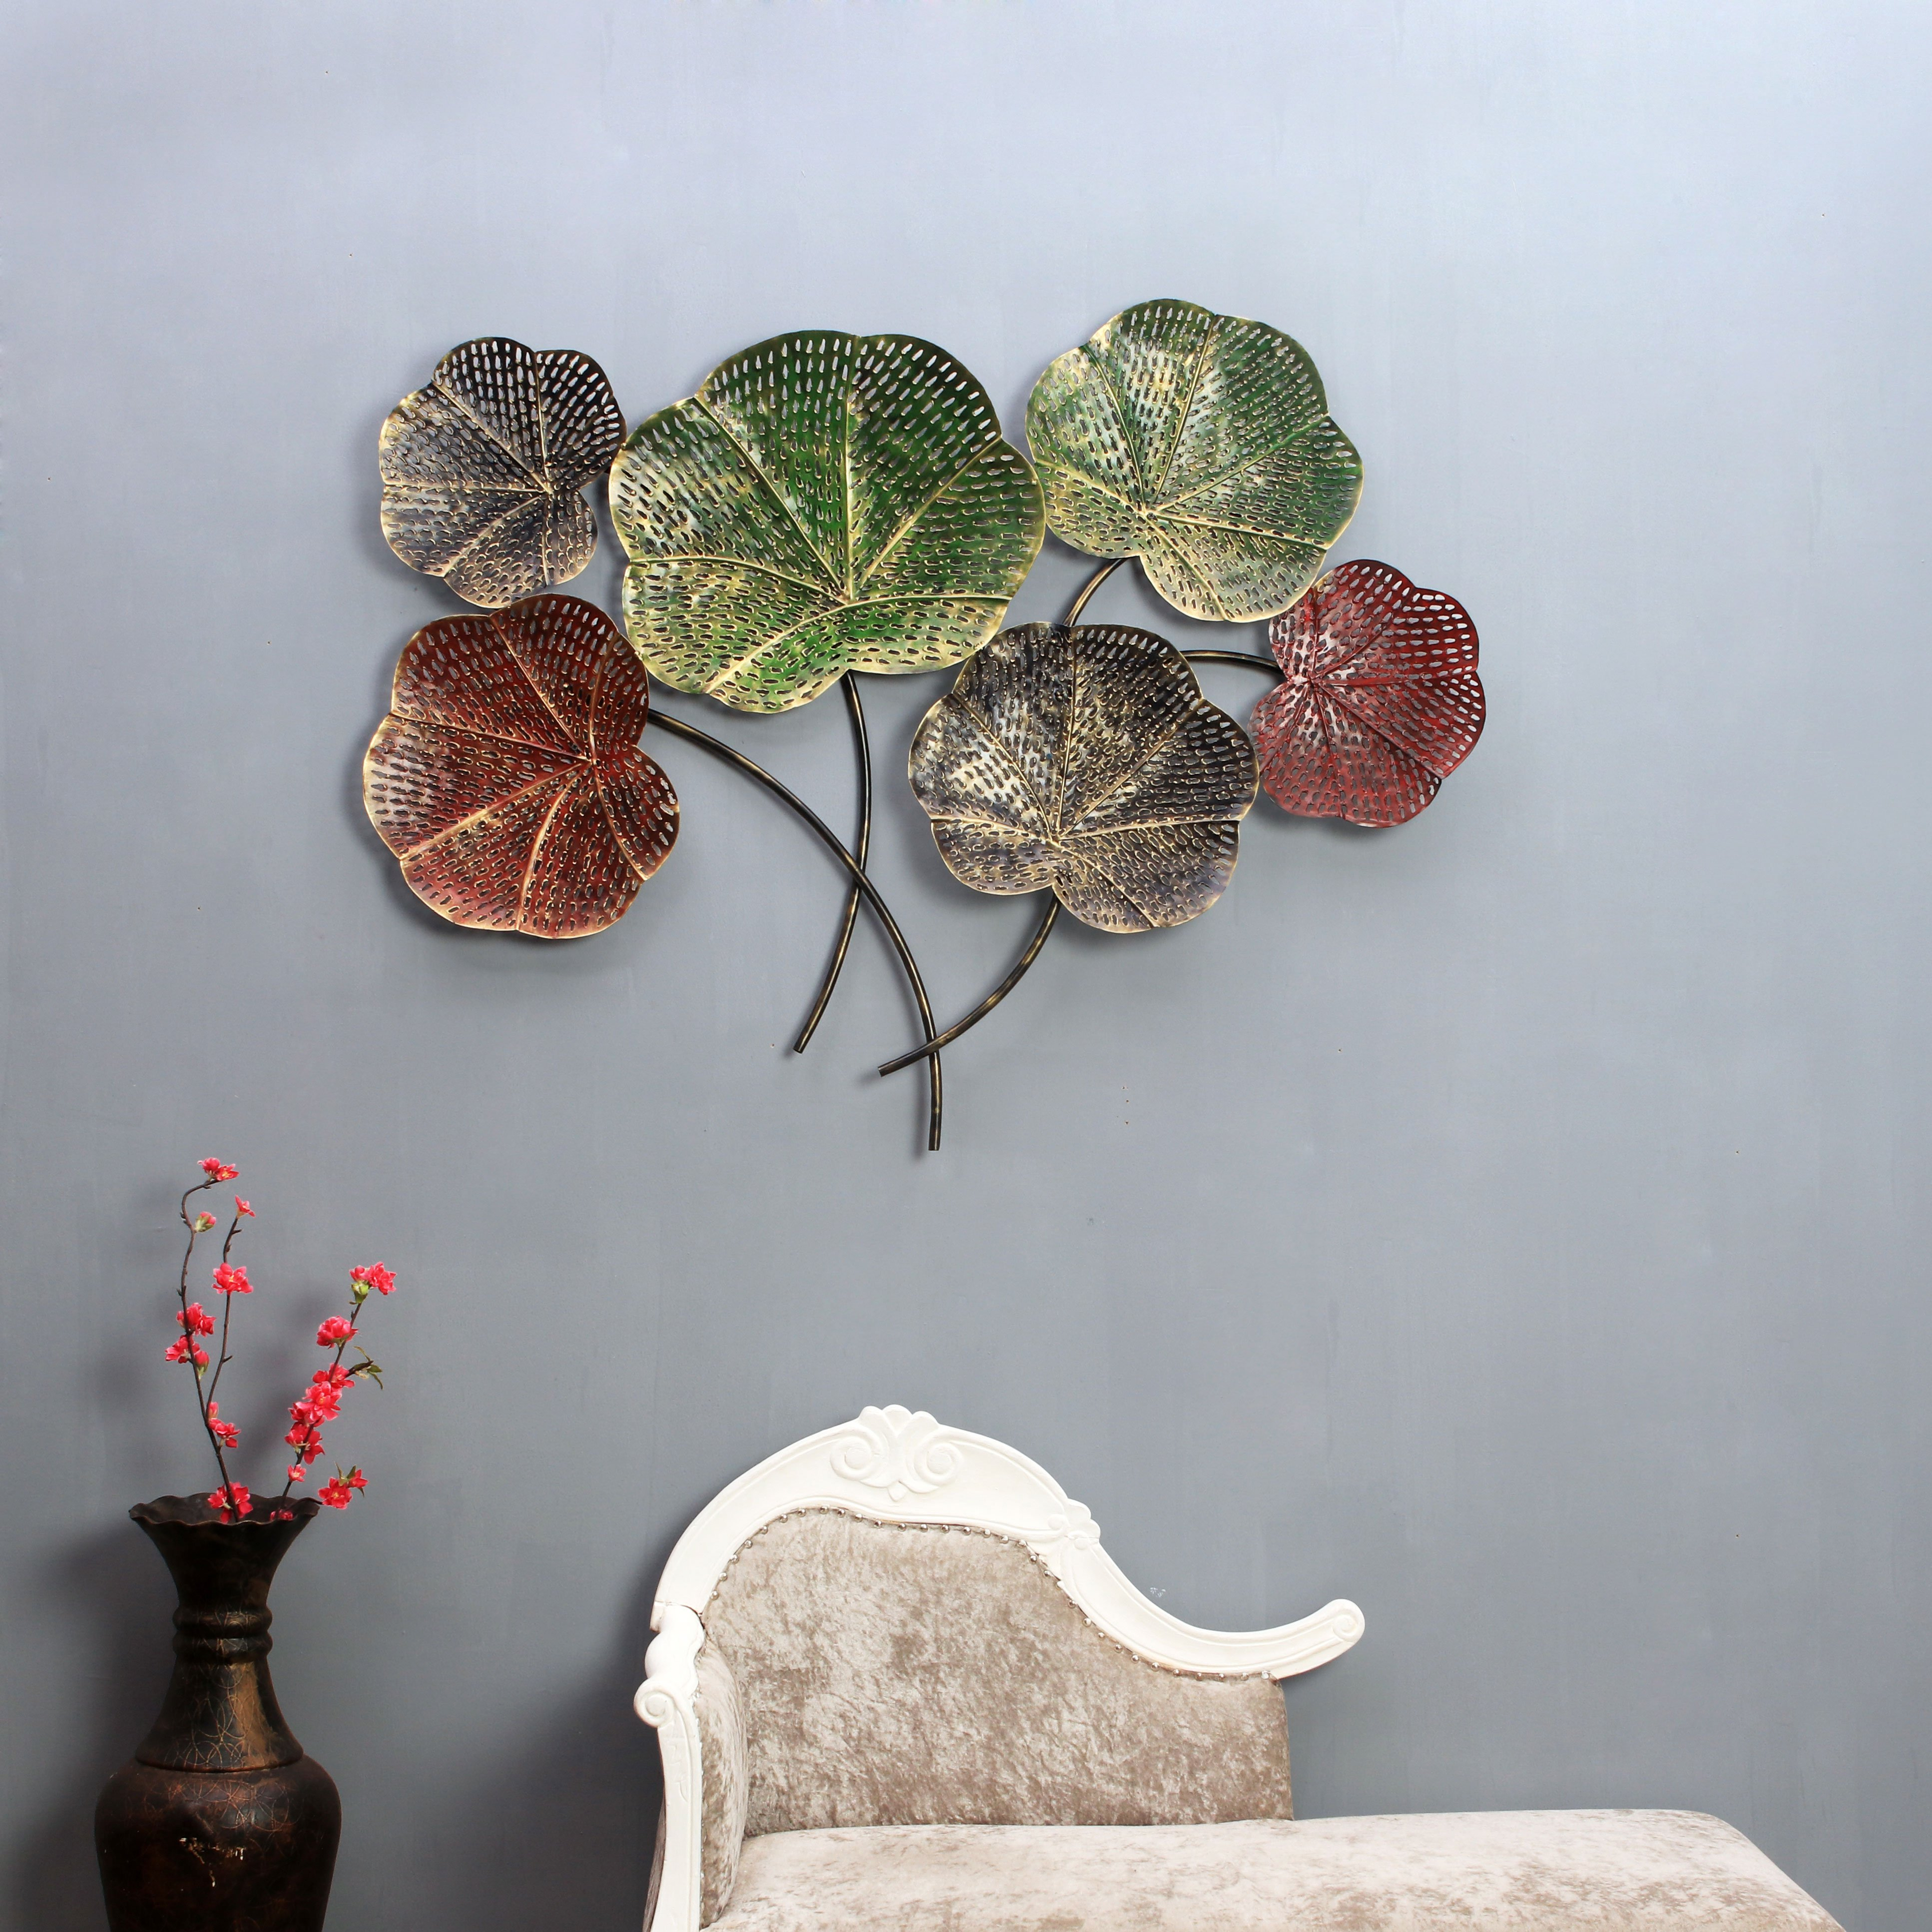 The India Craft Mythical Flowers Artwork Metal Iron Flower Family Beautiful Wall Hanging Home Decor Handicrafts Sculpture Decoration For Living